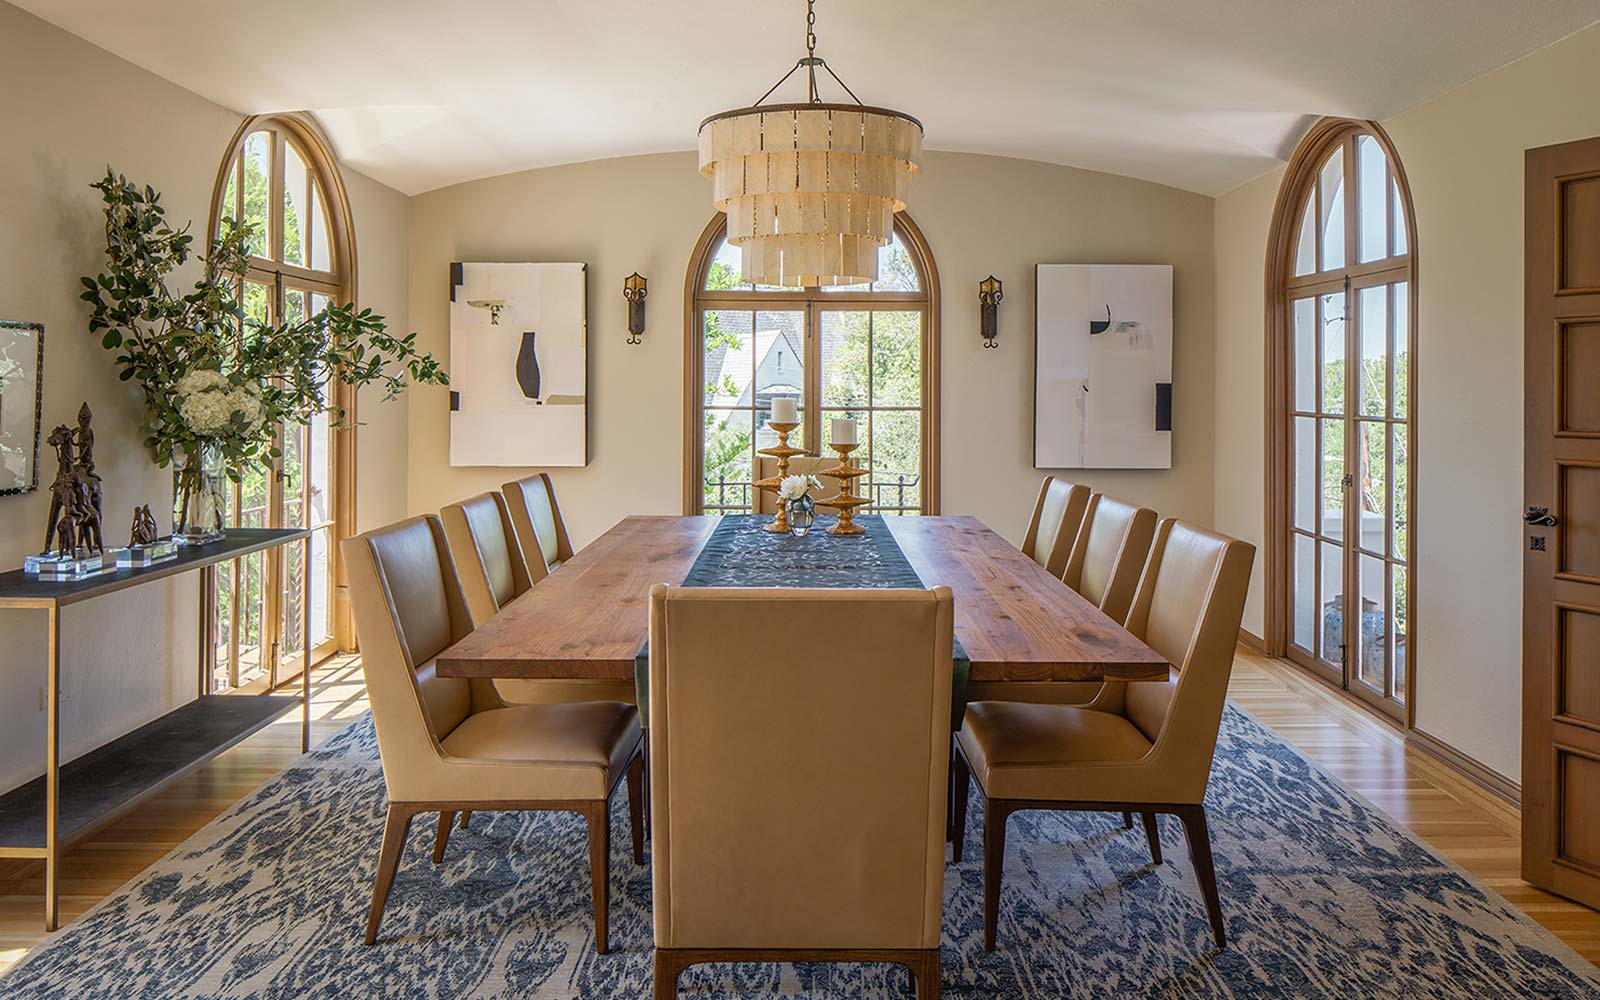 spanish mediterranean chic interior design dining room palo alto interior designer - Interior Designer In Spanish